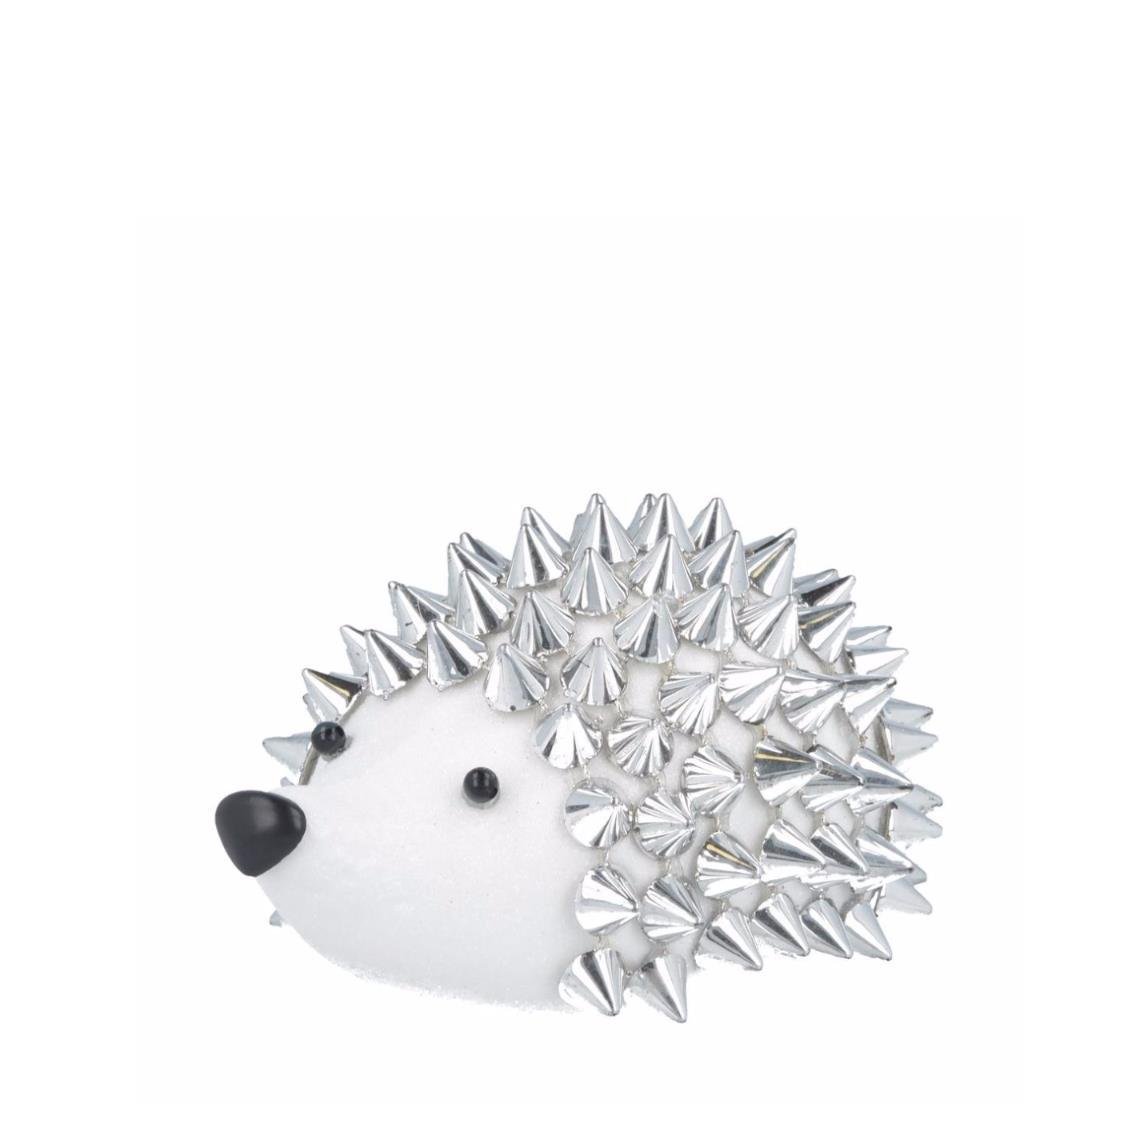 Hedgehog with Spikes Silver